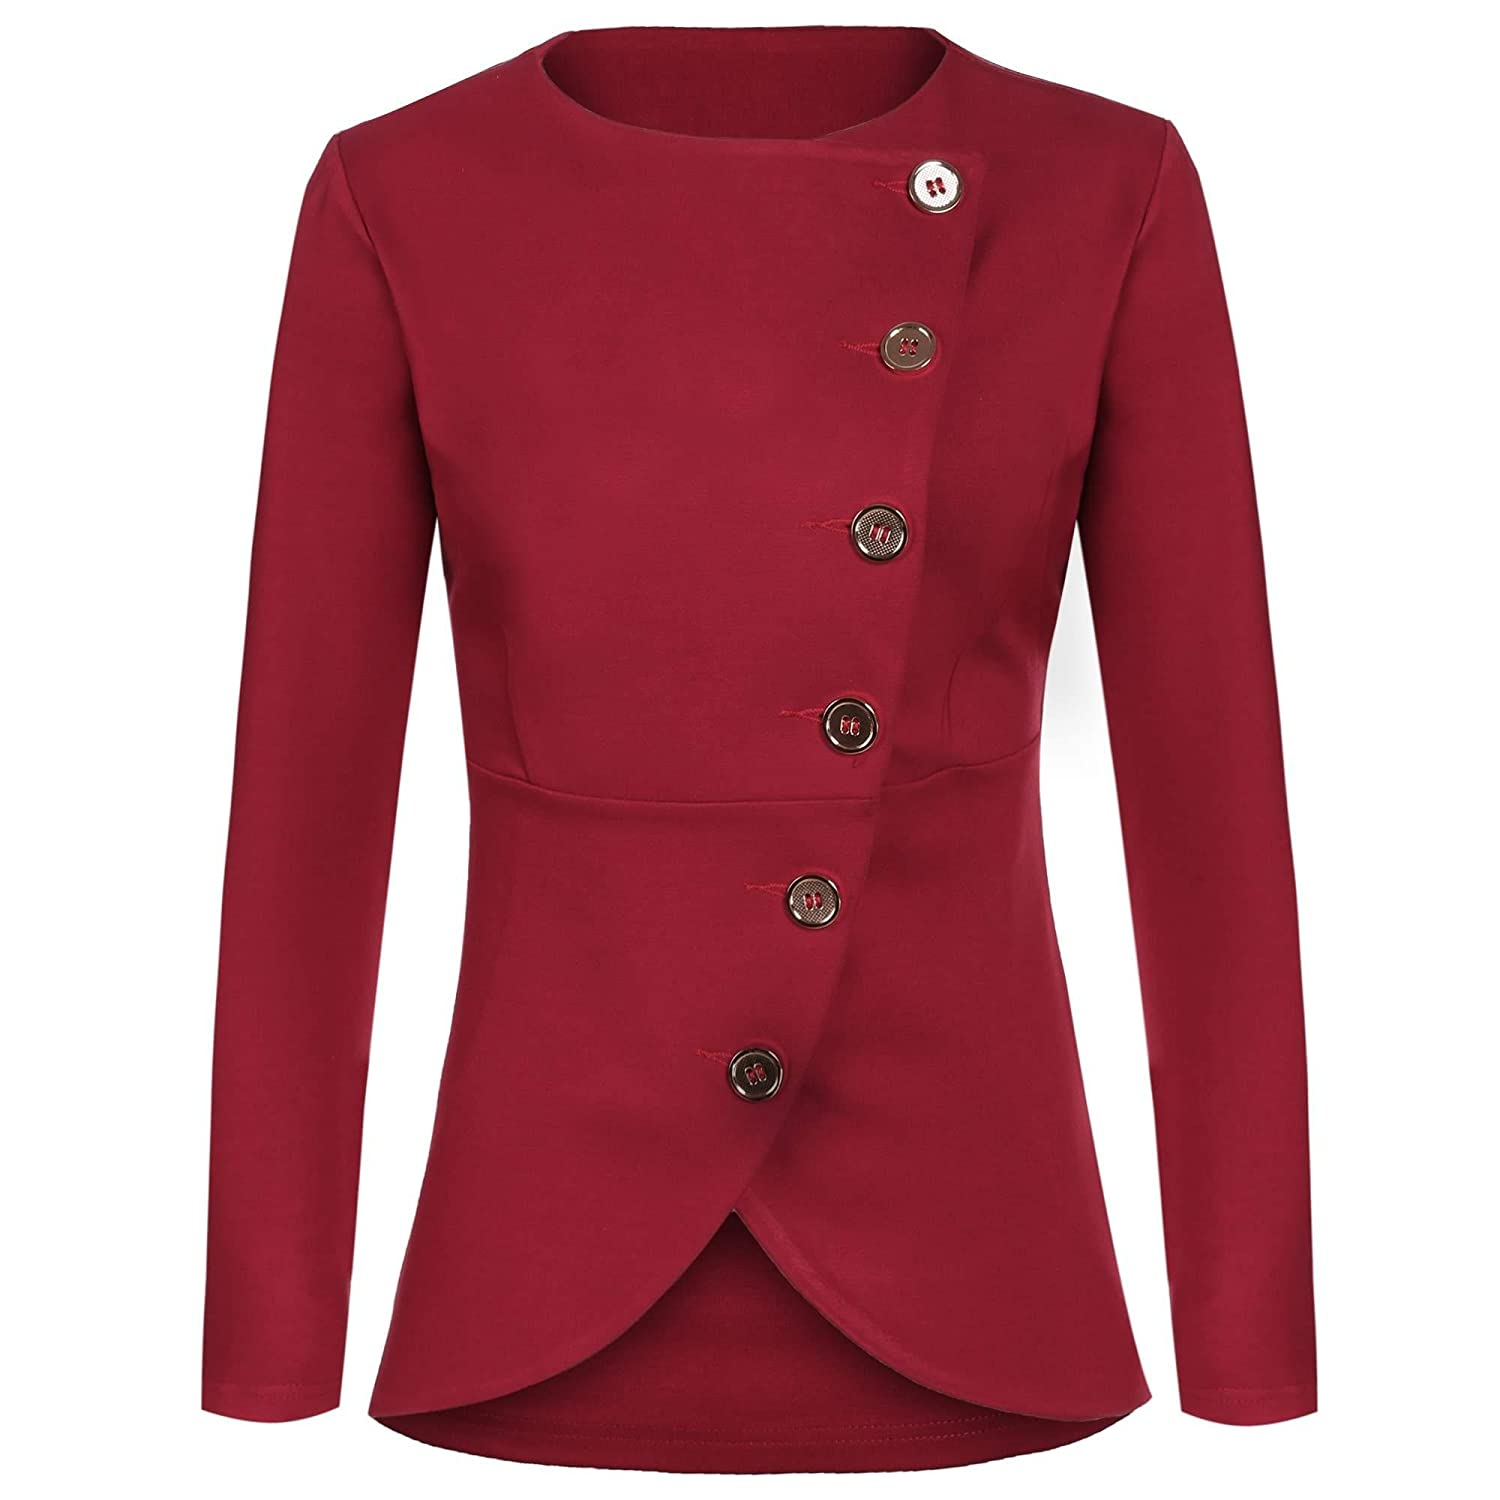 Meaneor Women's Casual Single Breast Work Blazer Buttons up Asymmetric Hem Jacket YC001445##